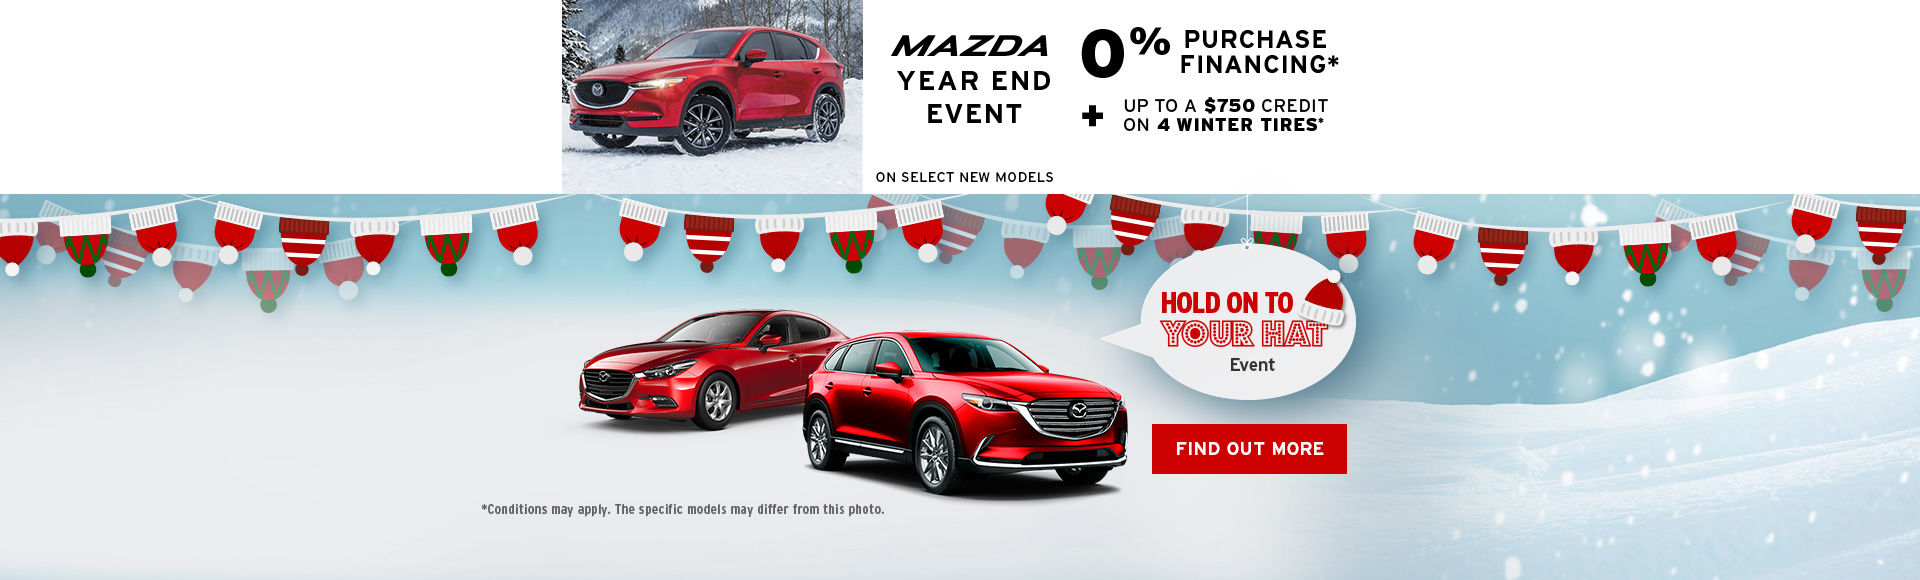 Mazda event! - hold on to your hat  - headers